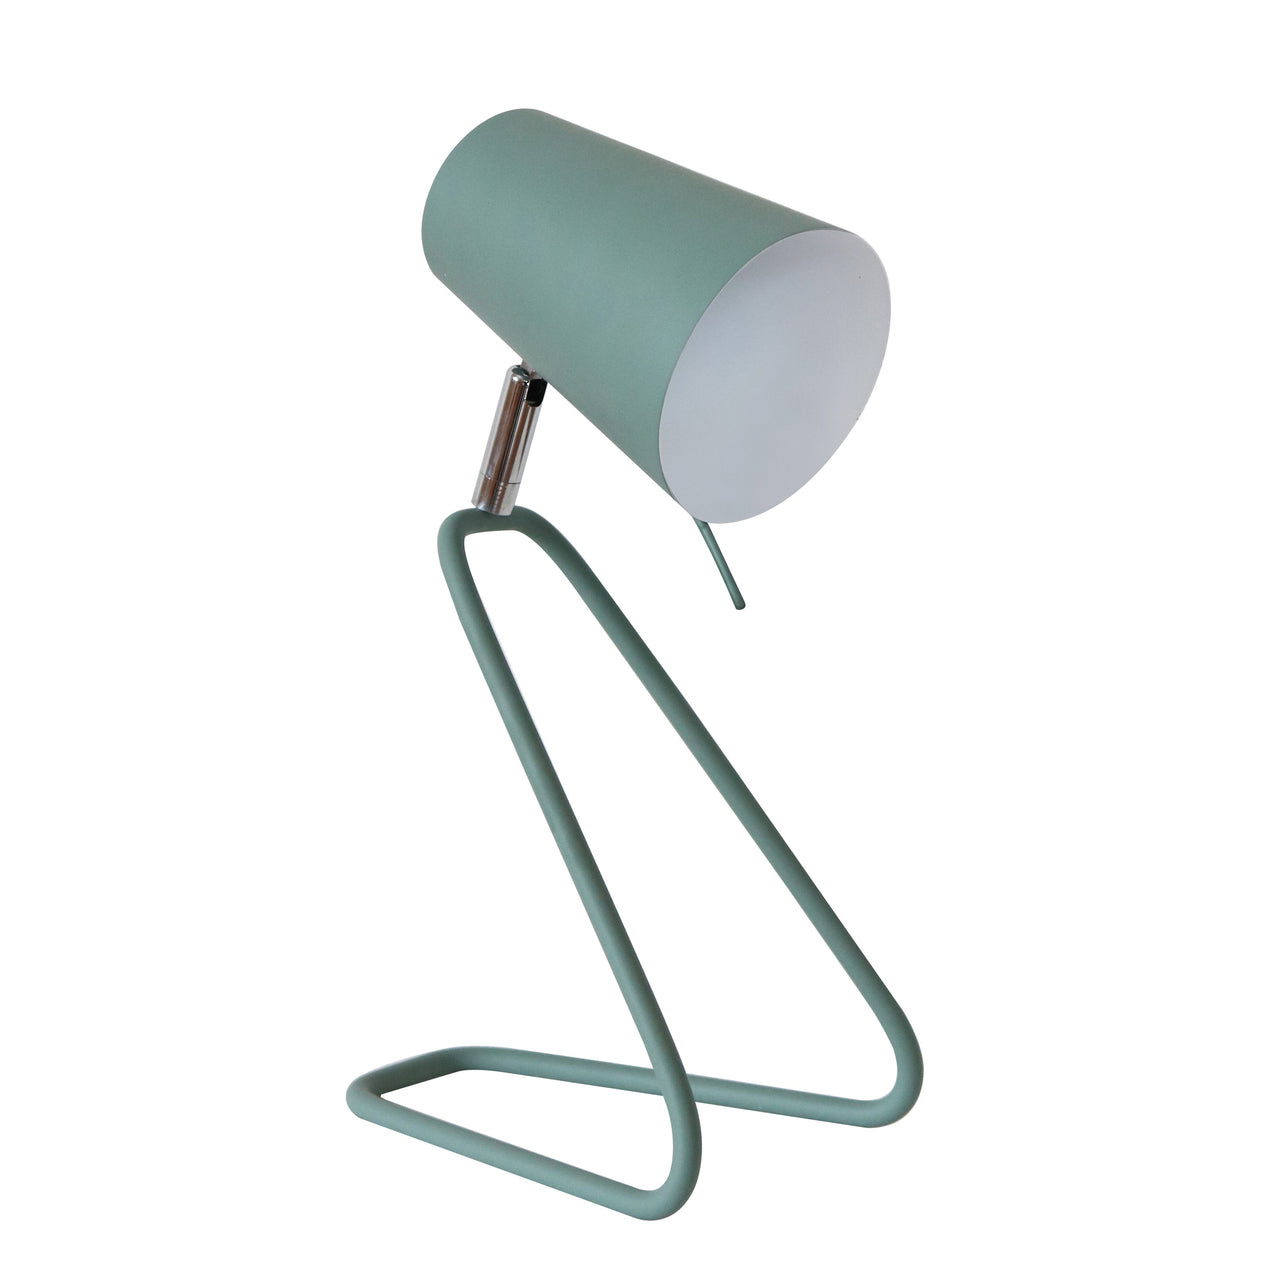 "METAL 12"" KNEELING DESK LAMP,GREEN - Casa Muebles"